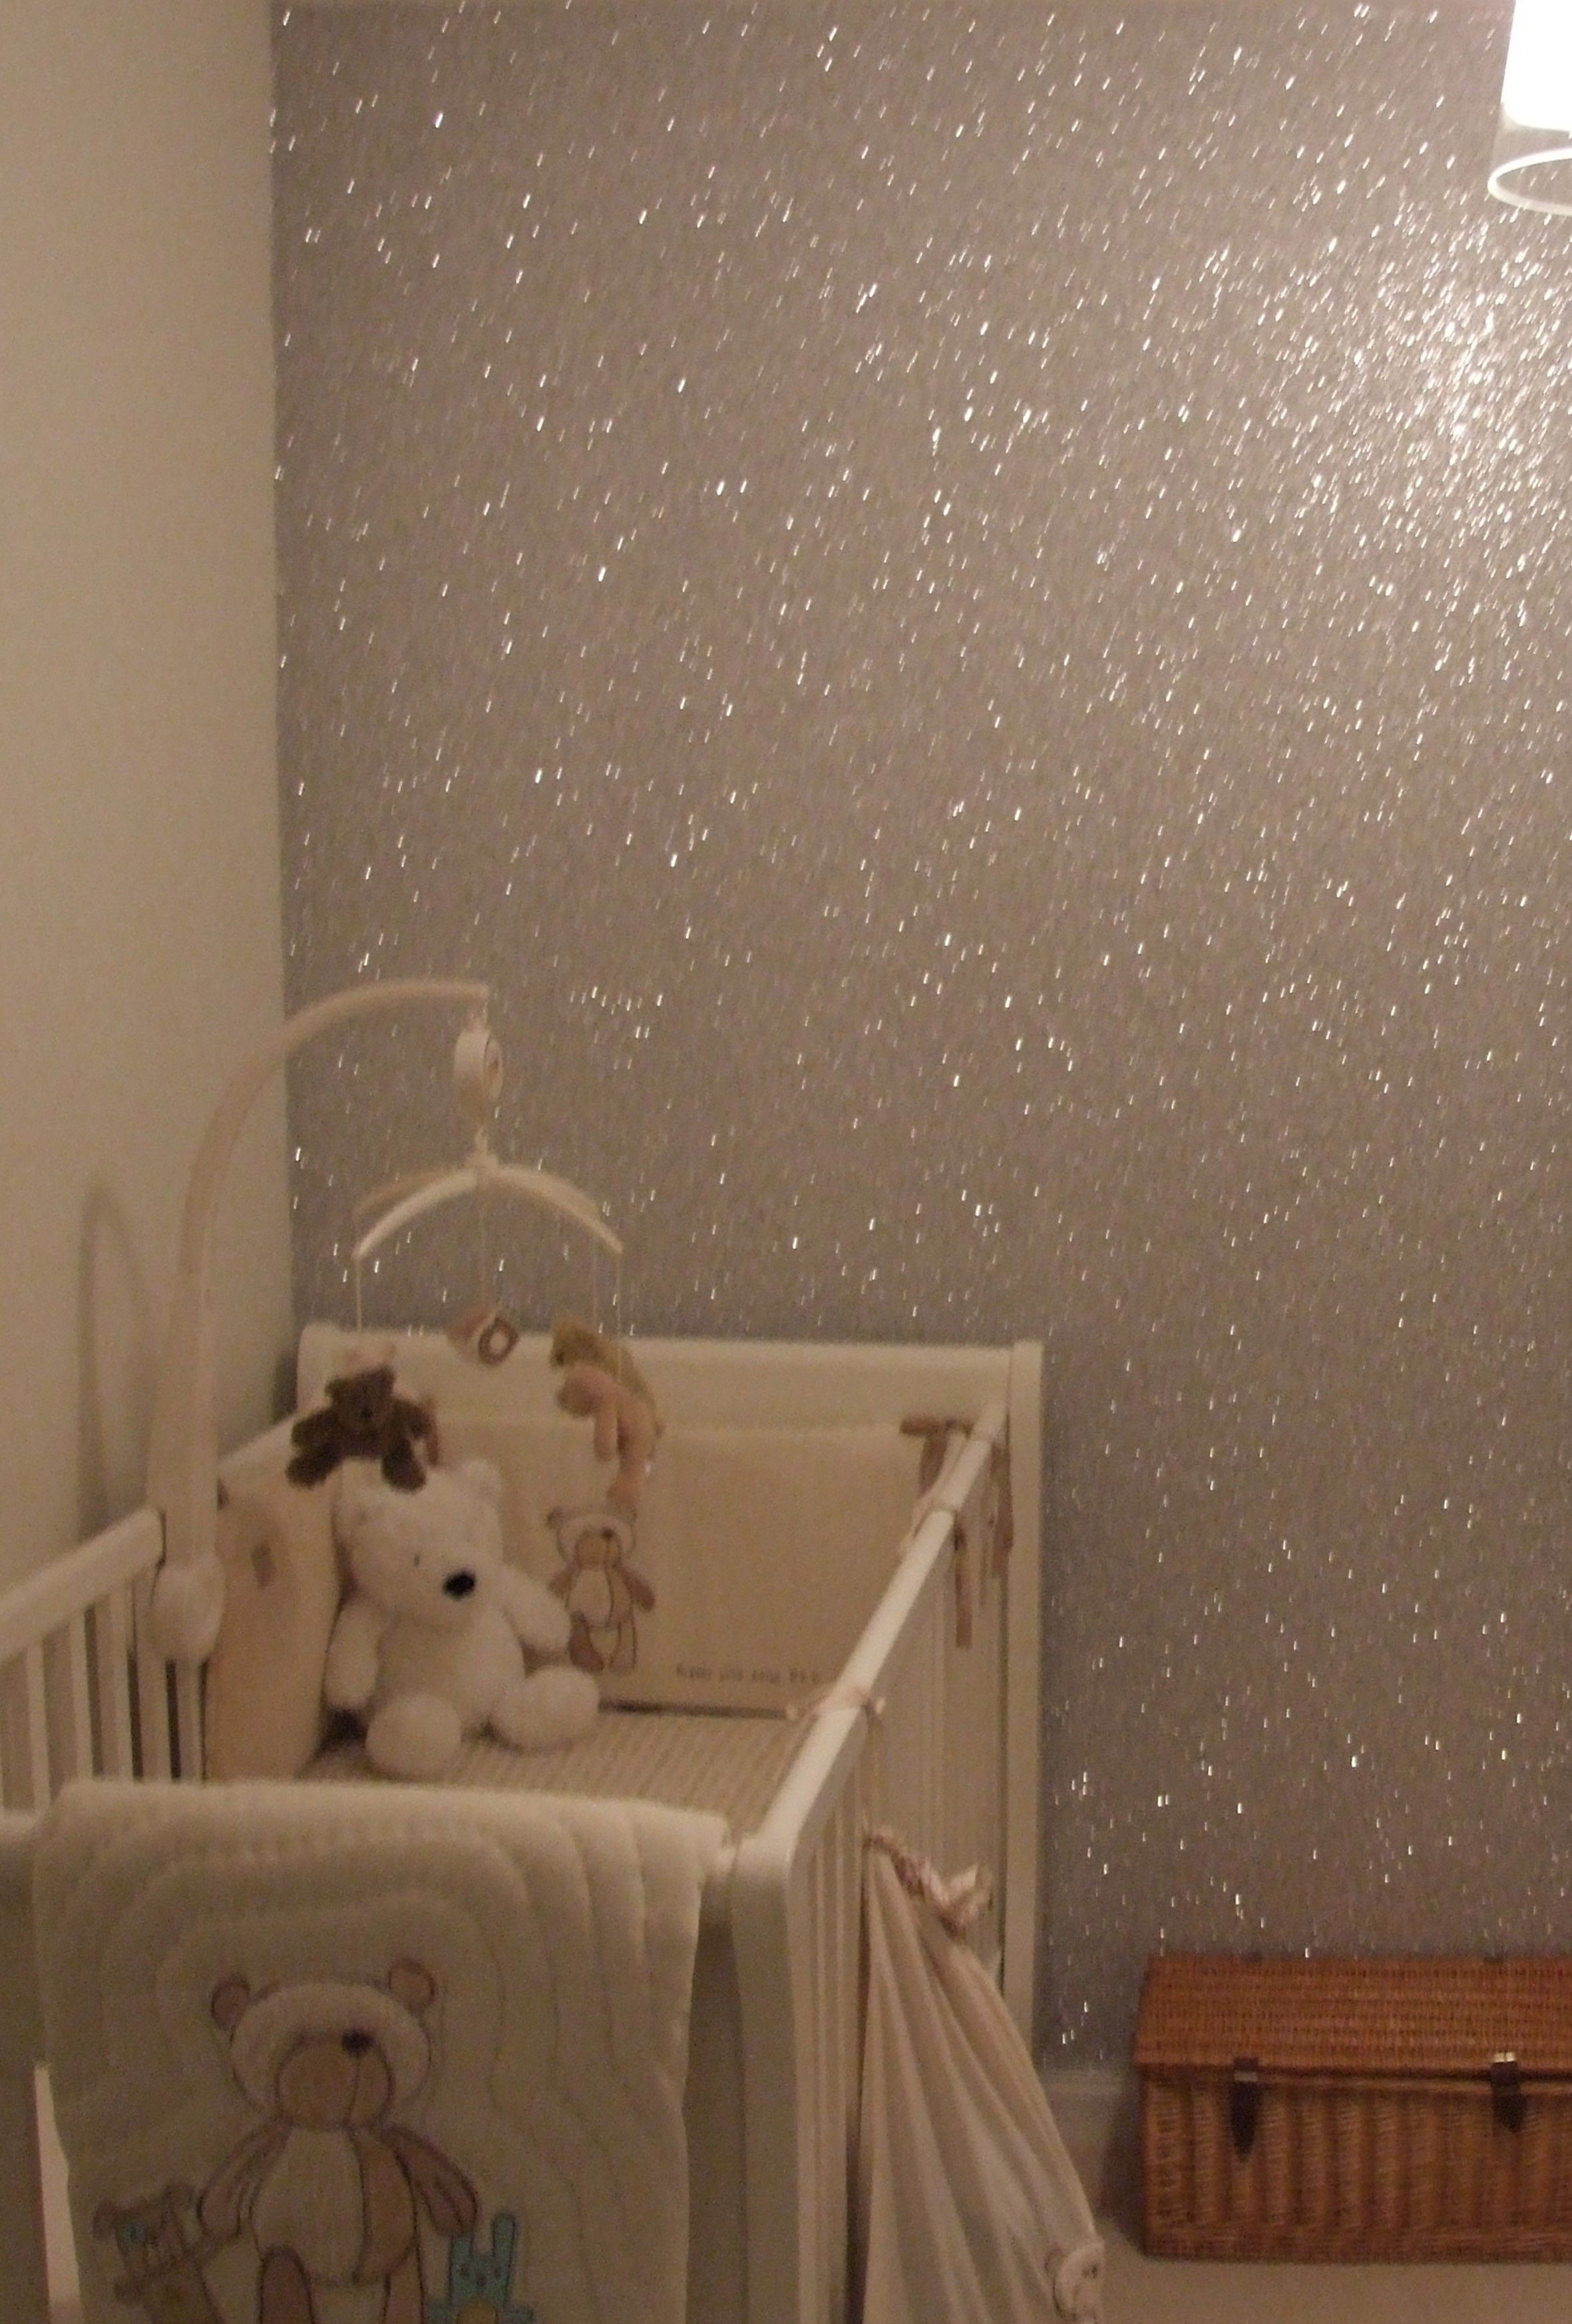 glitter wall! HGTV says if you mix a gallon of glue with glitter, then paint with it the glue will dry clear... Bam!! Glitter wall!!    This is so happening if i ever have a girl!